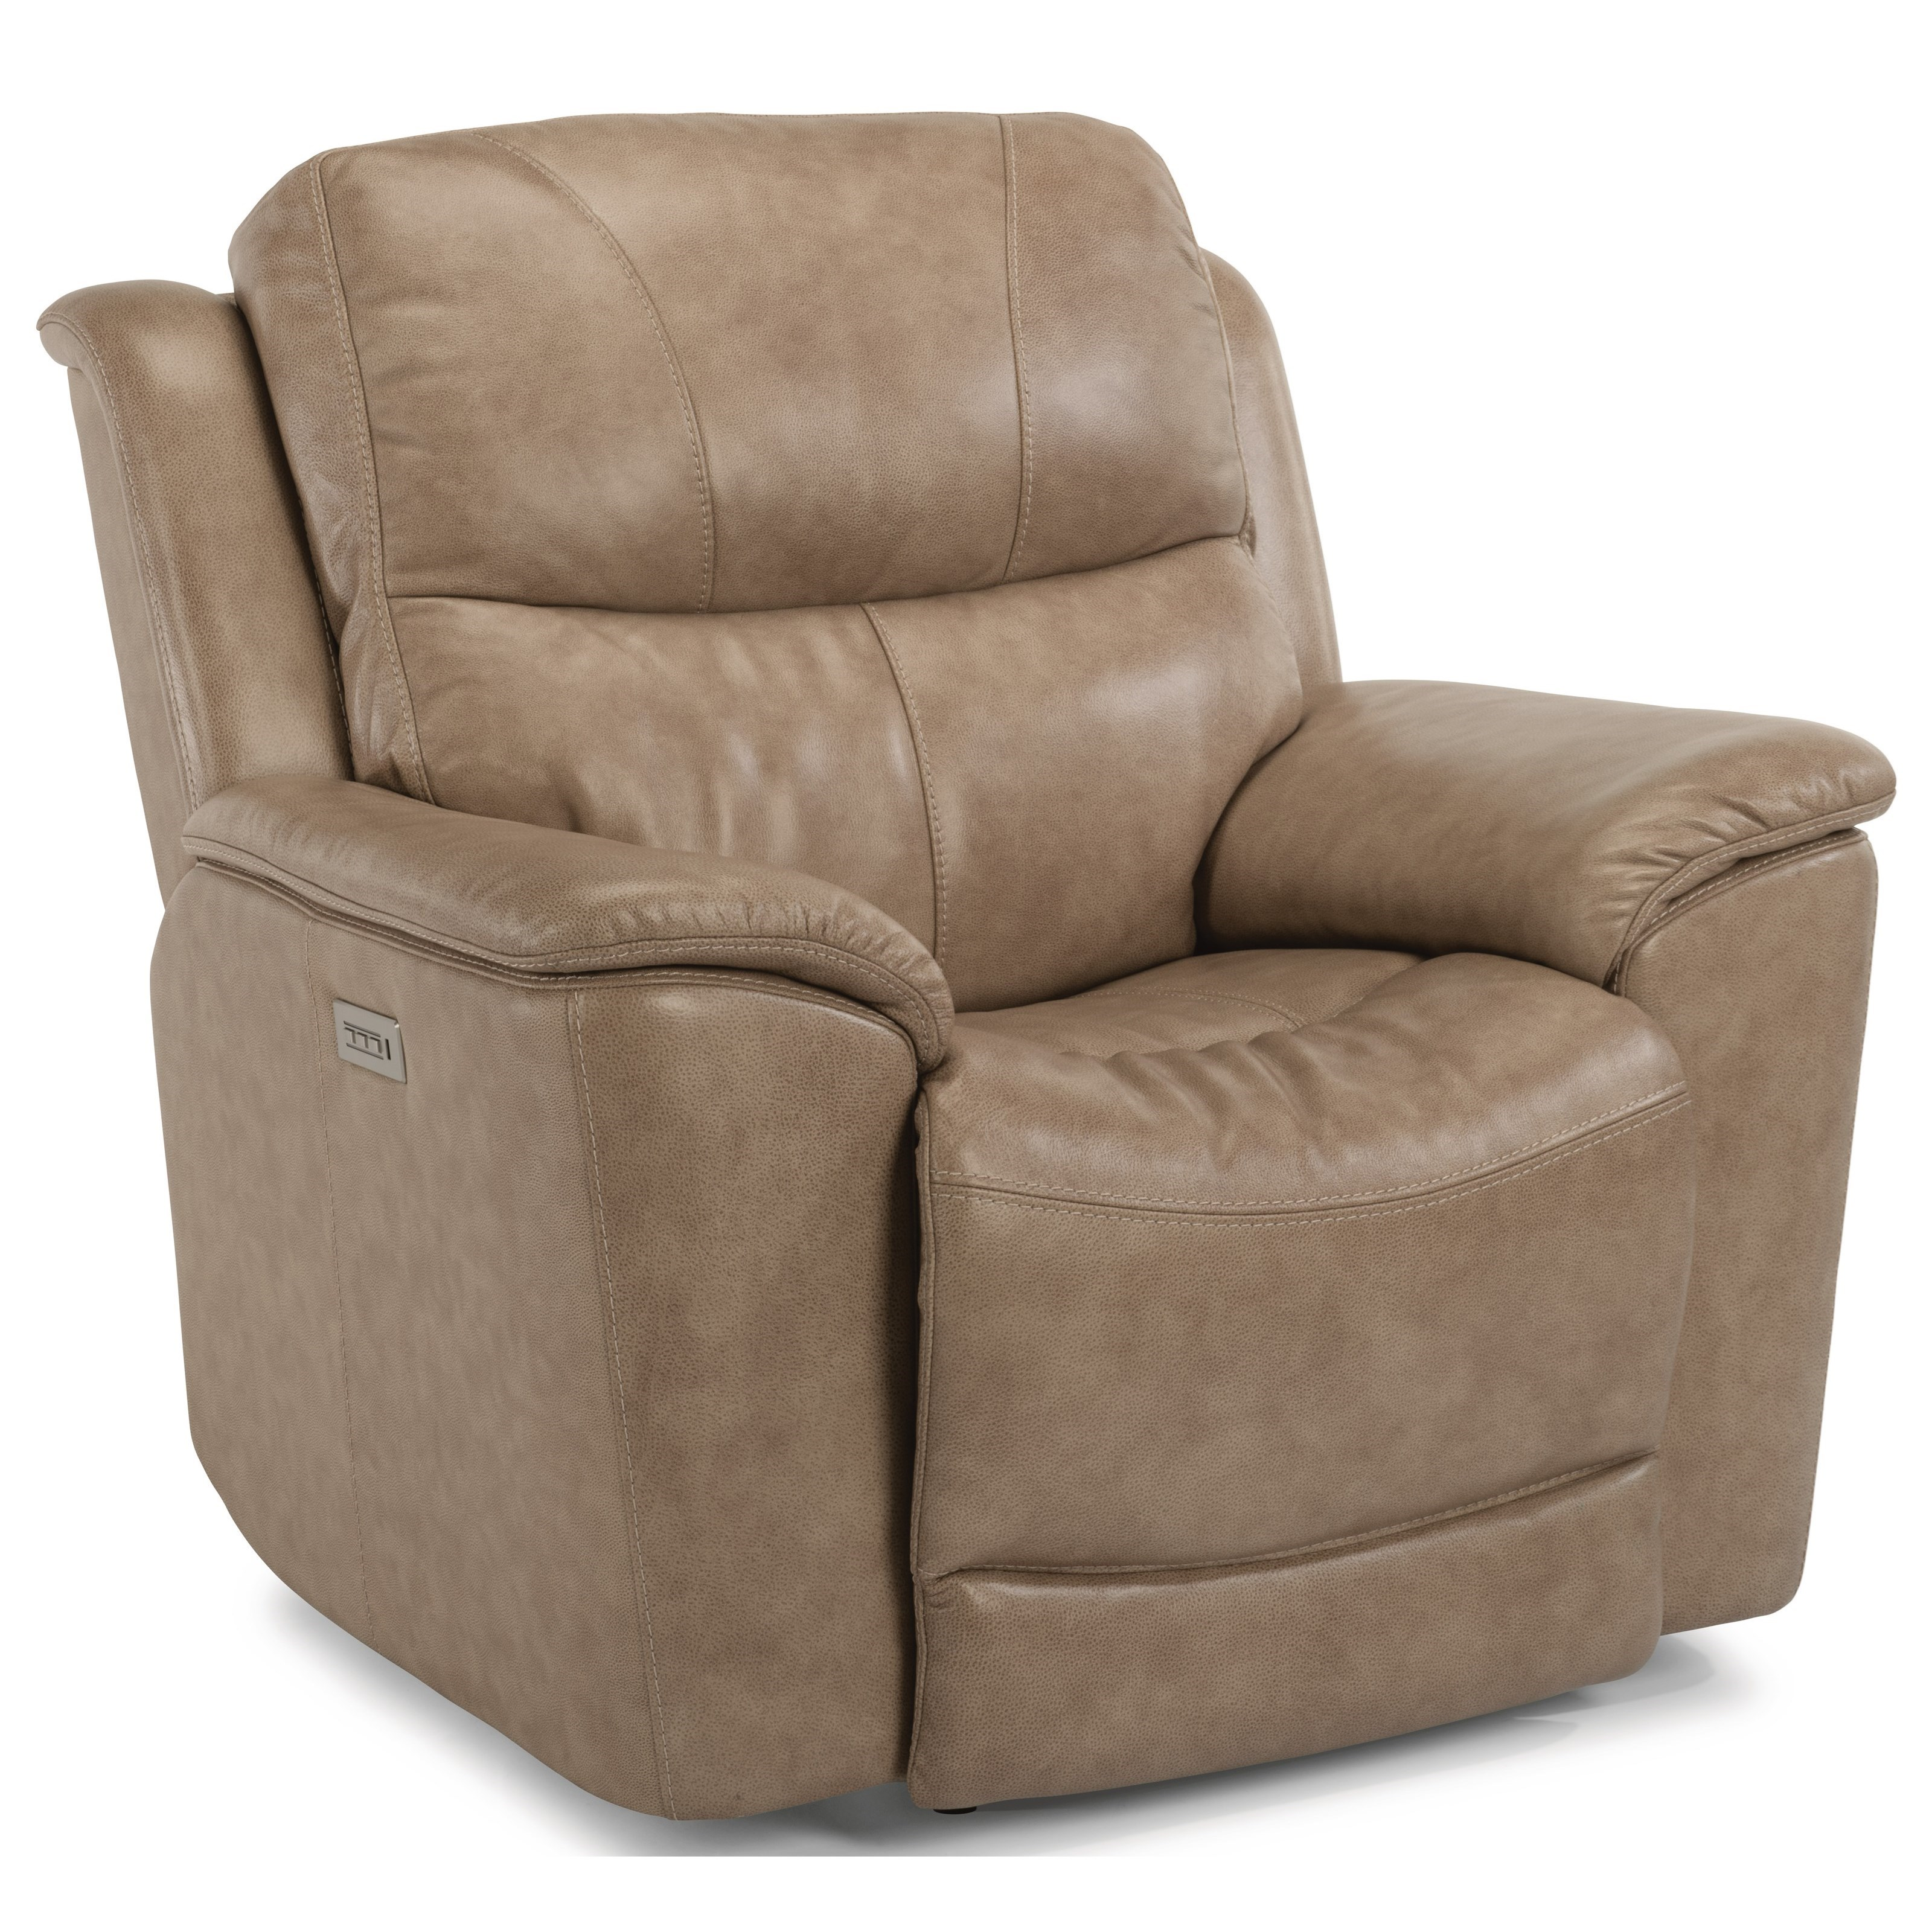 Flexsteel Electric Sofa: Cade Power Lay-Flat Recliner With